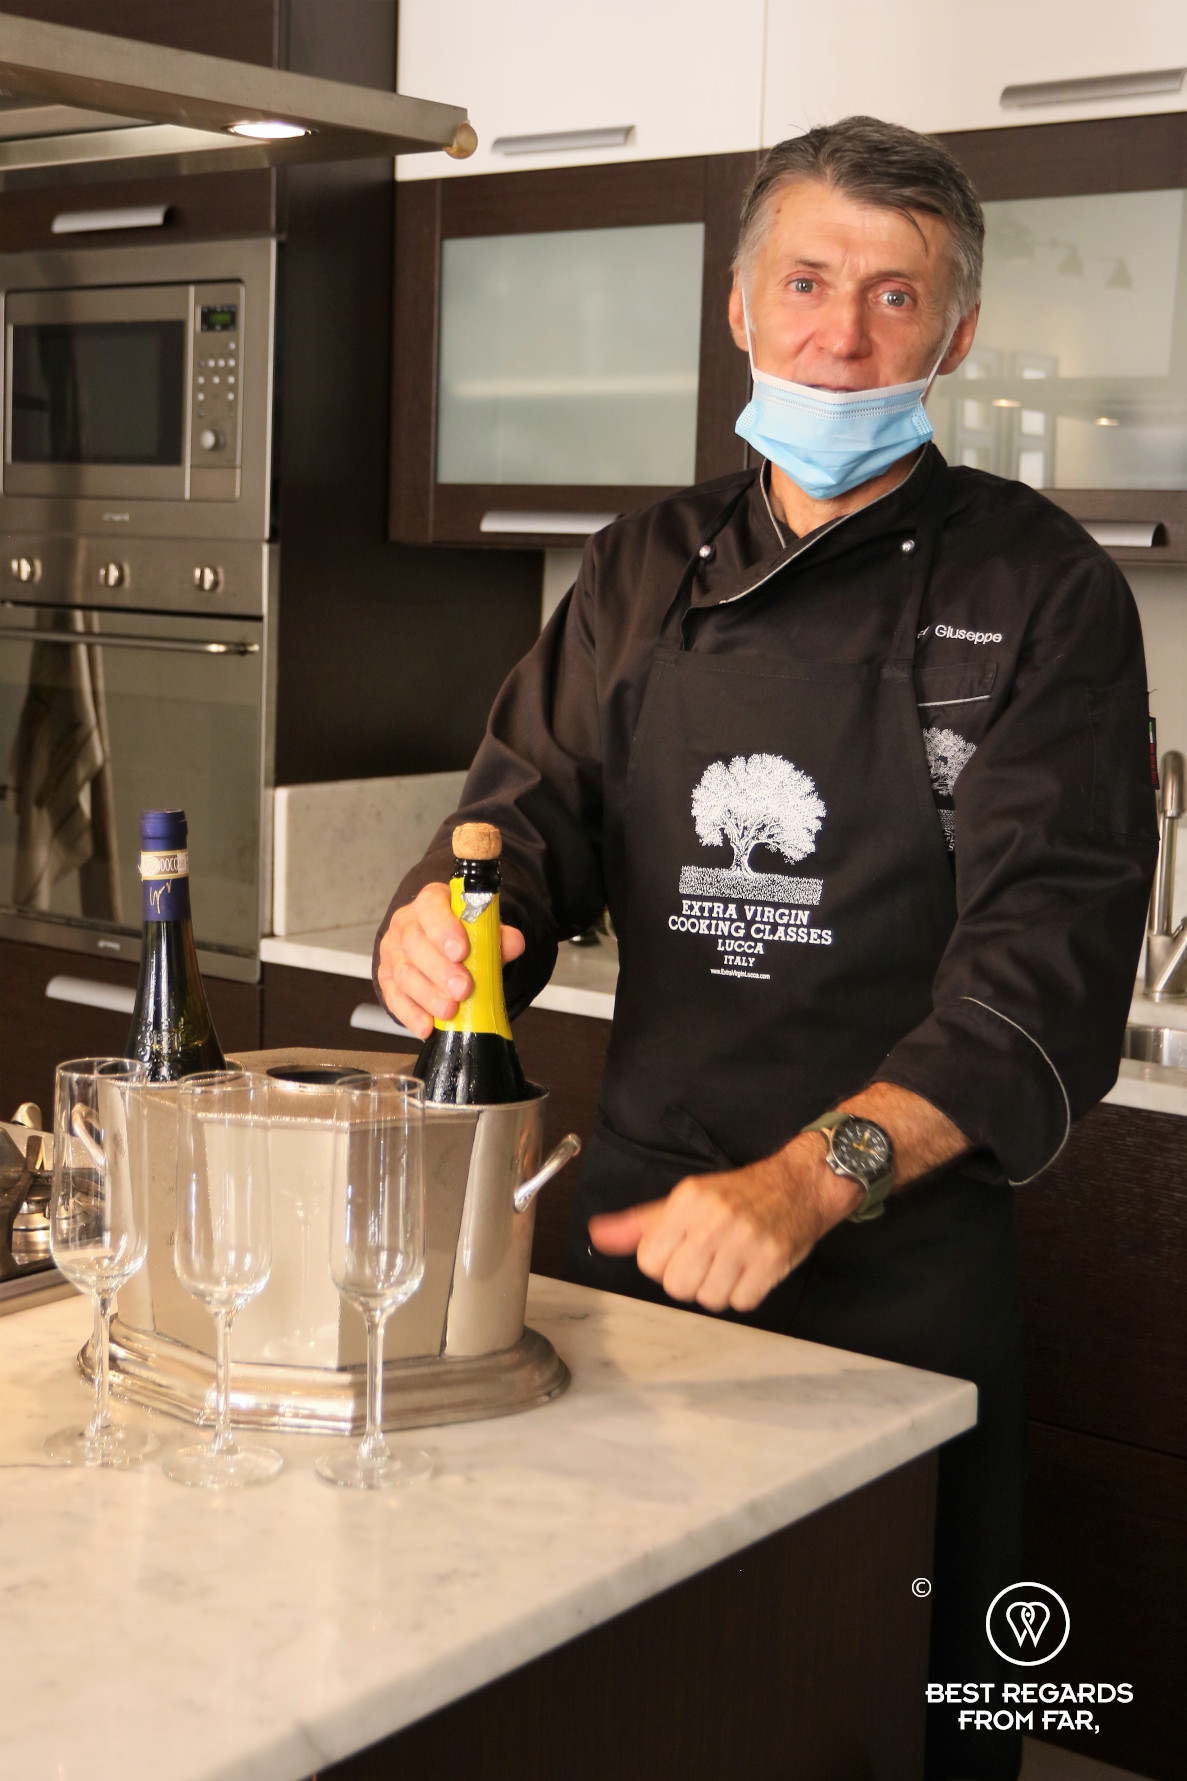 Chef Giuseppe Mazzocchi in his kitchen of Extra Virgin Cooking Classes, Lucca, Italy